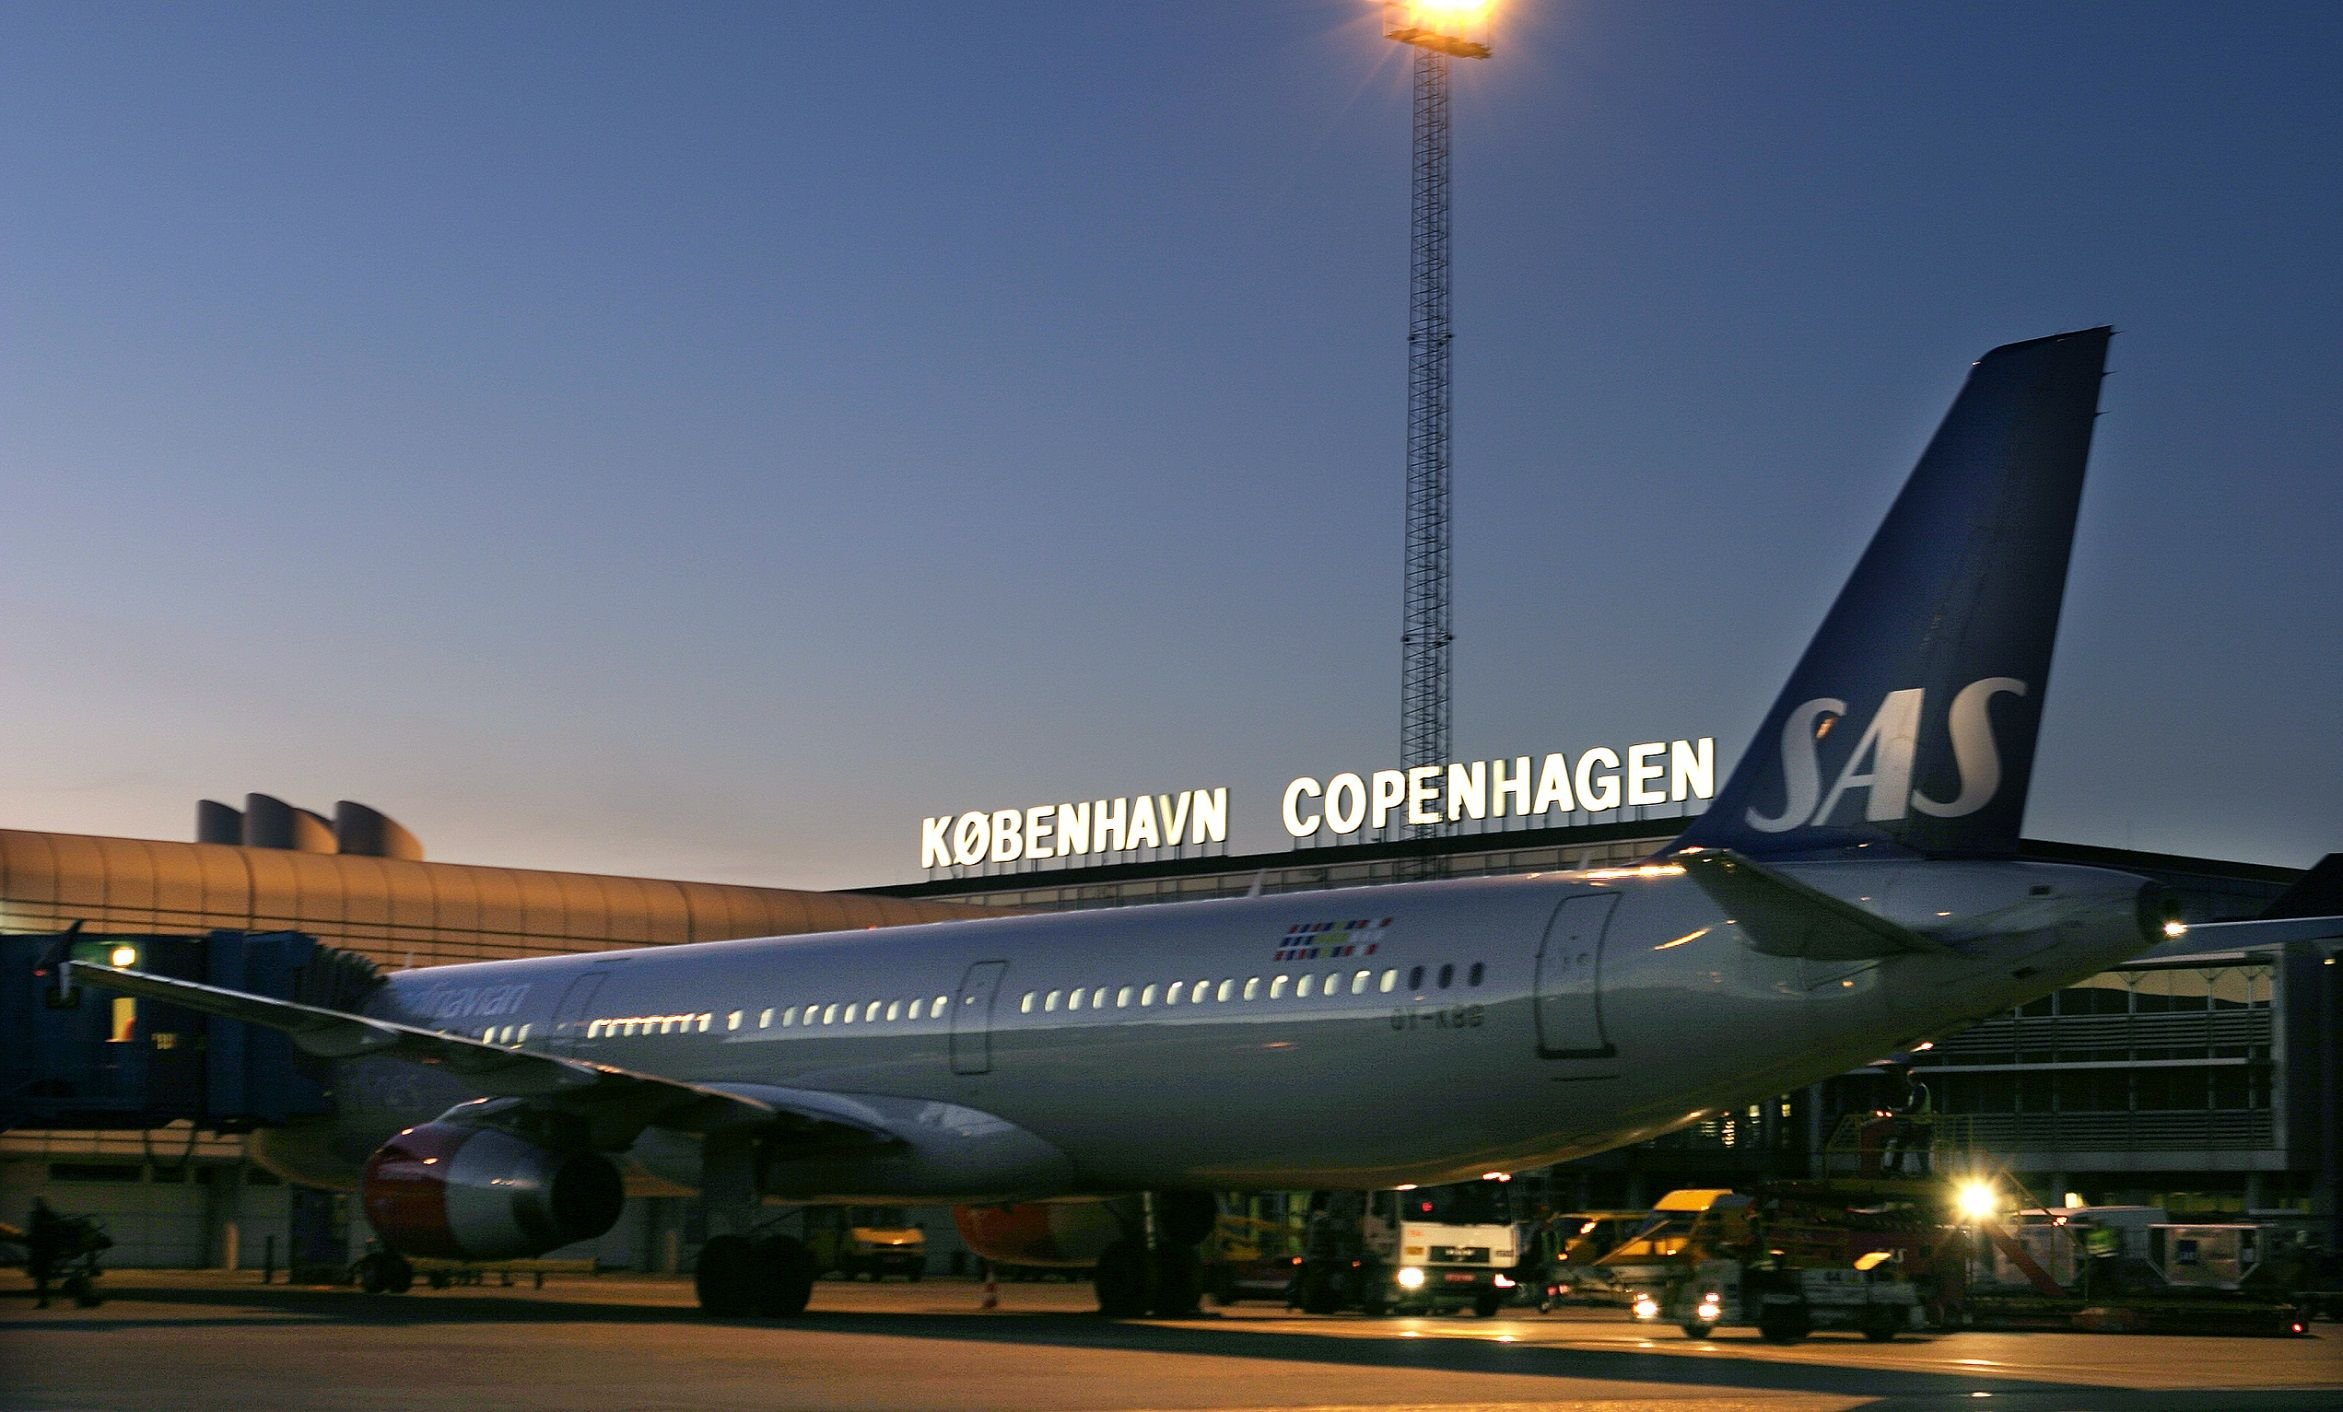 Shipping giant A.P. Moller-Maersk and airline SAS are partners for the 10-megawatt pilot. (Credit: Copenhagen Airport)